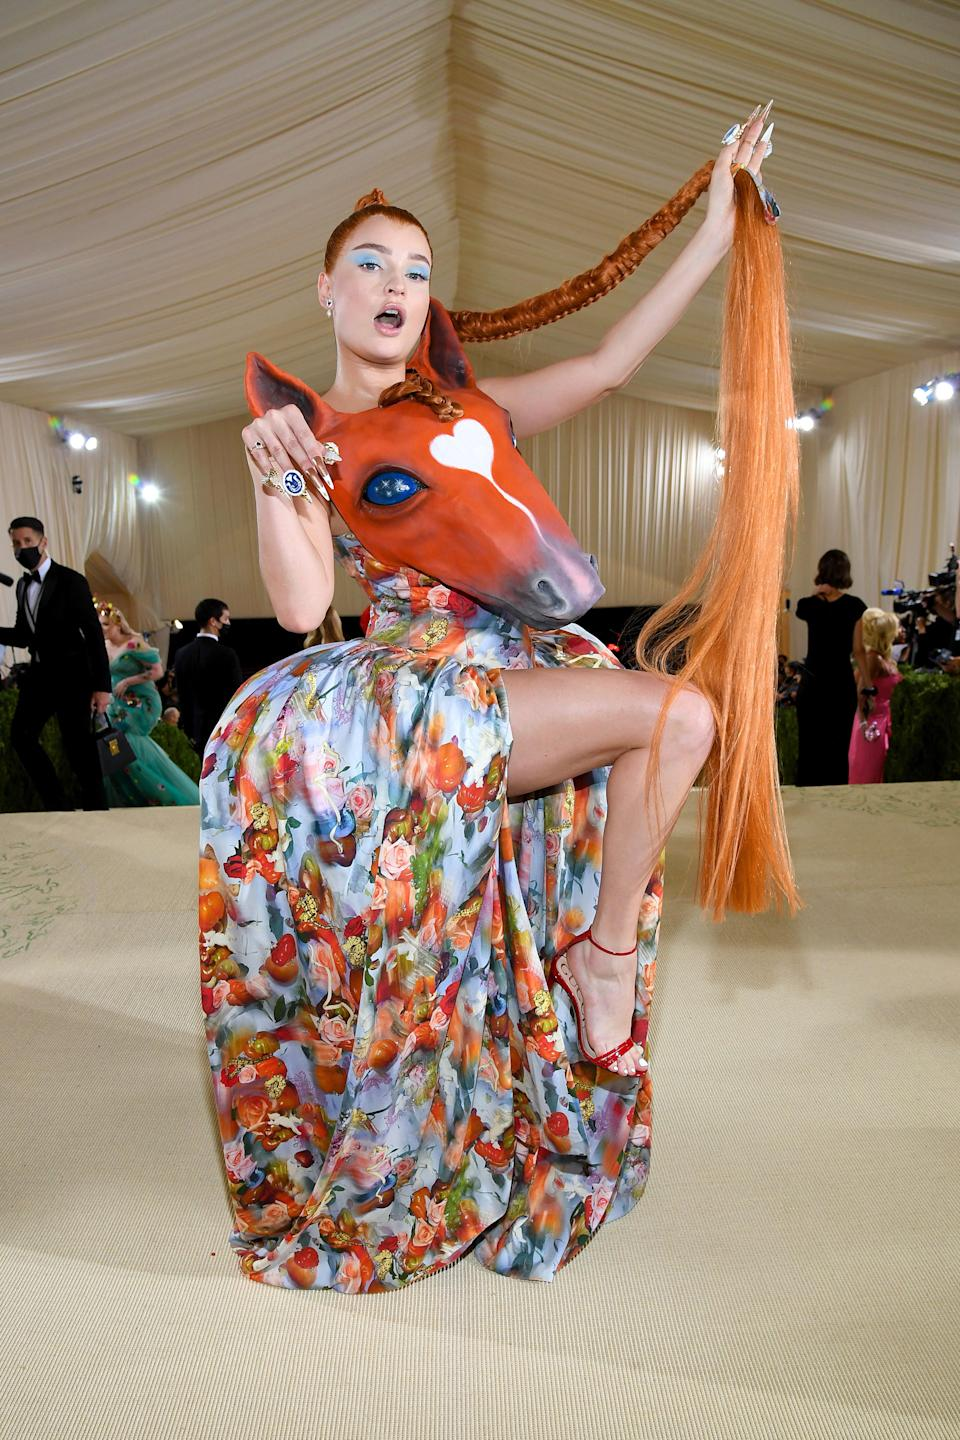 Kim Petras made an unforgettable debut at the Met wearing a horse headdress designed by sustainable New York brand Collina Strada. Fun and on theme!